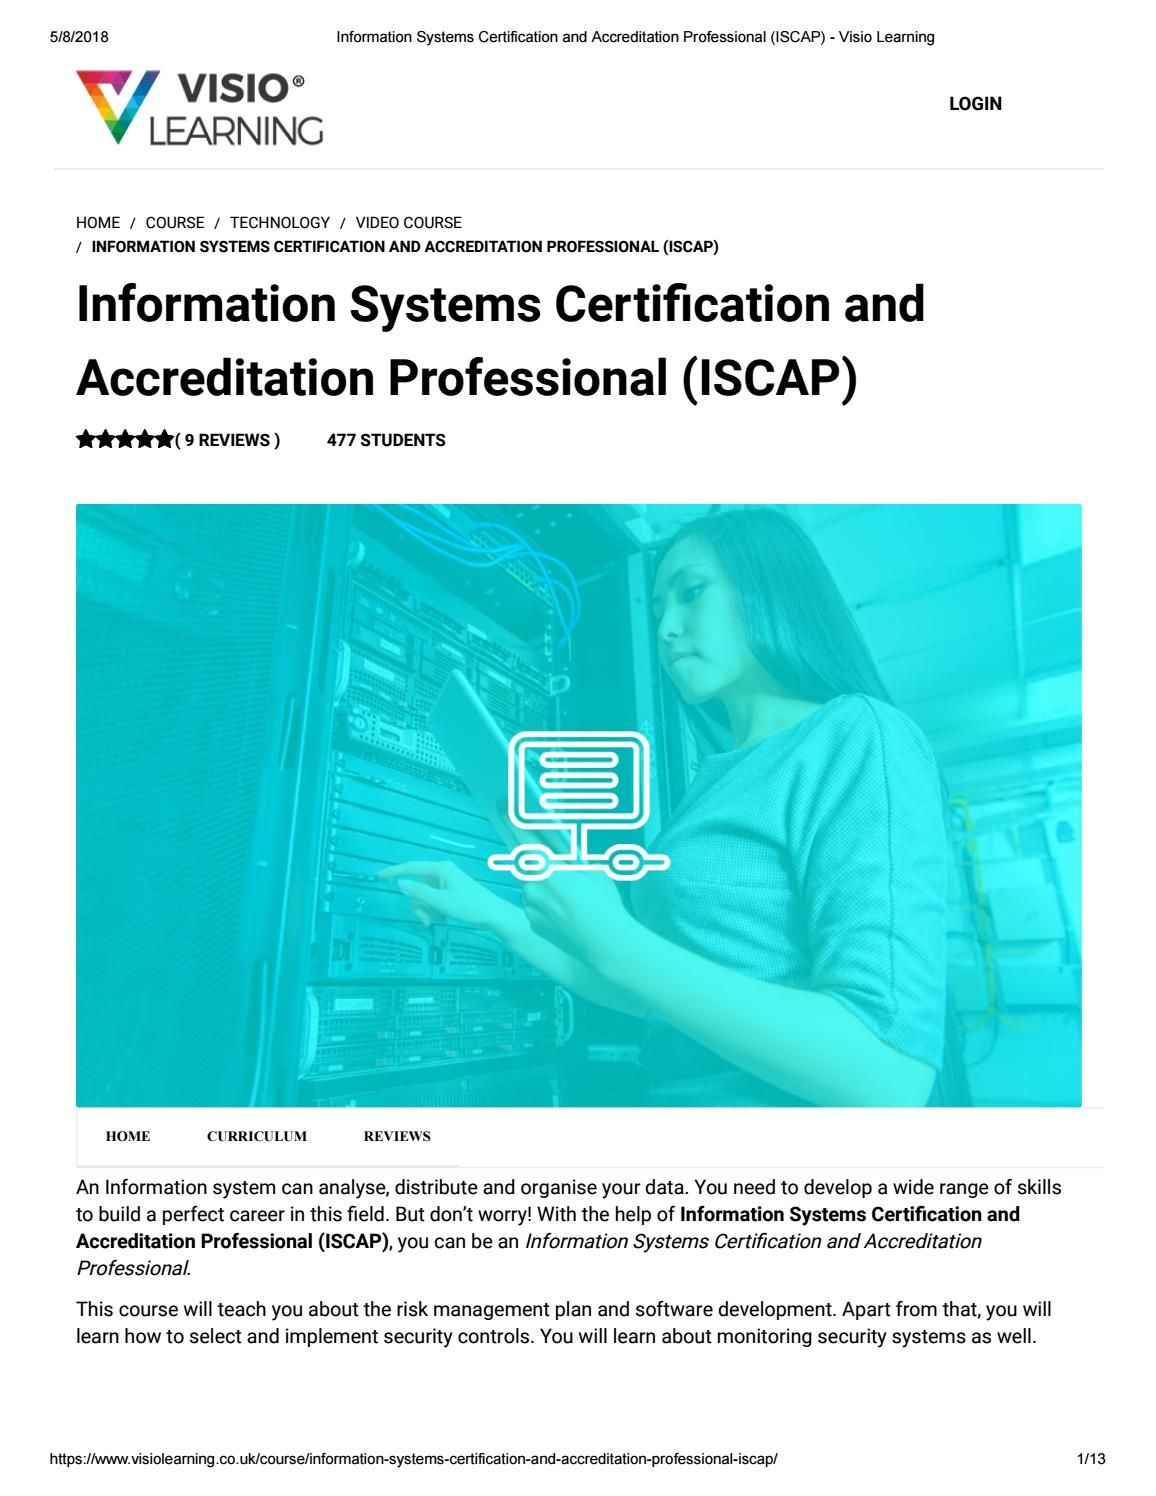 Information Systems Certification And Accreditation Professional